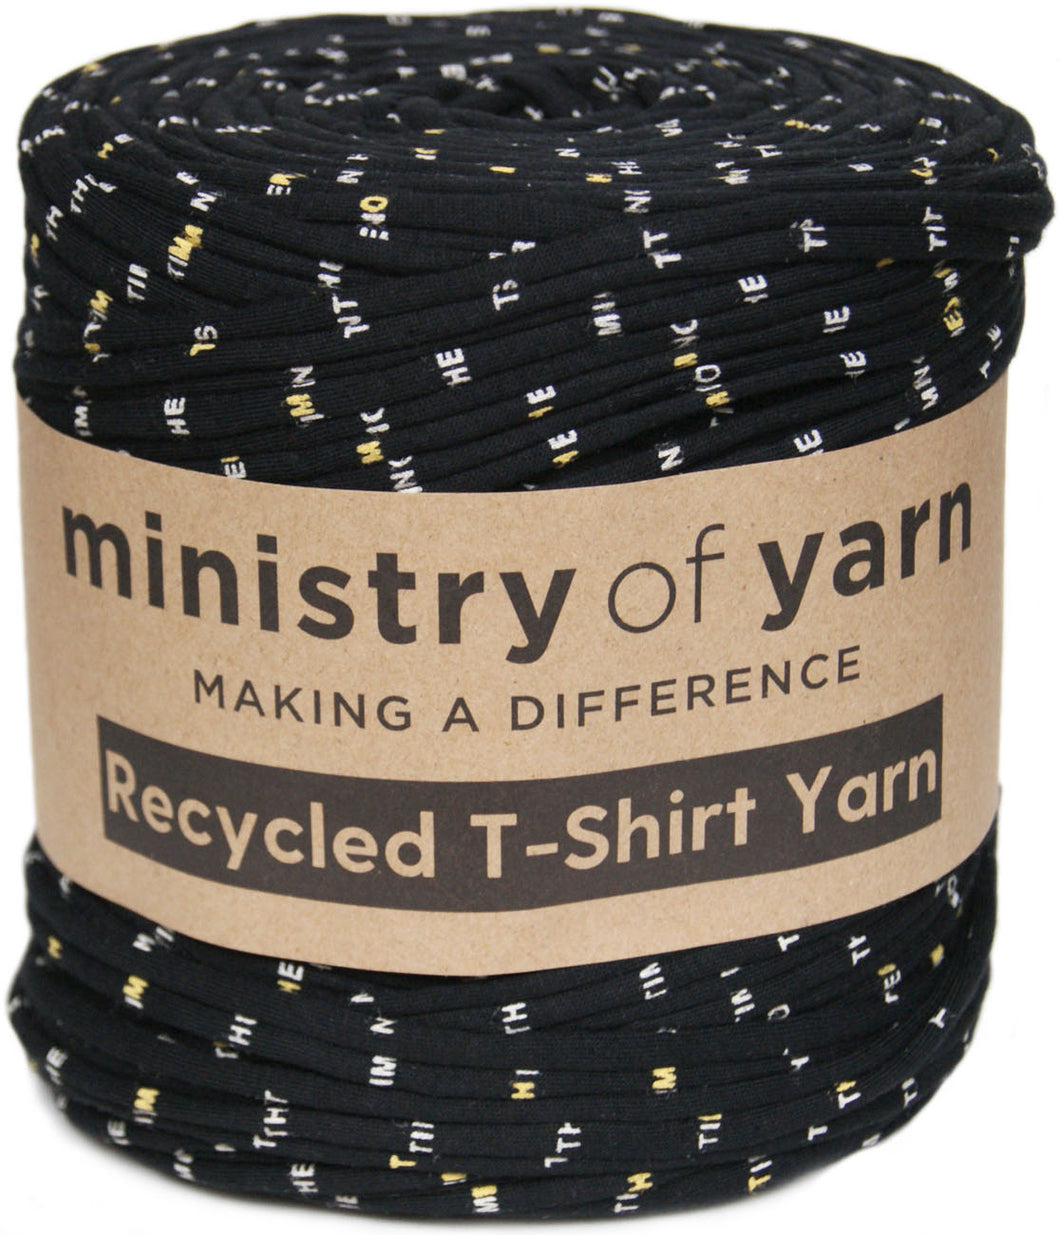 Black printed recycled t-shirt yarn Australia